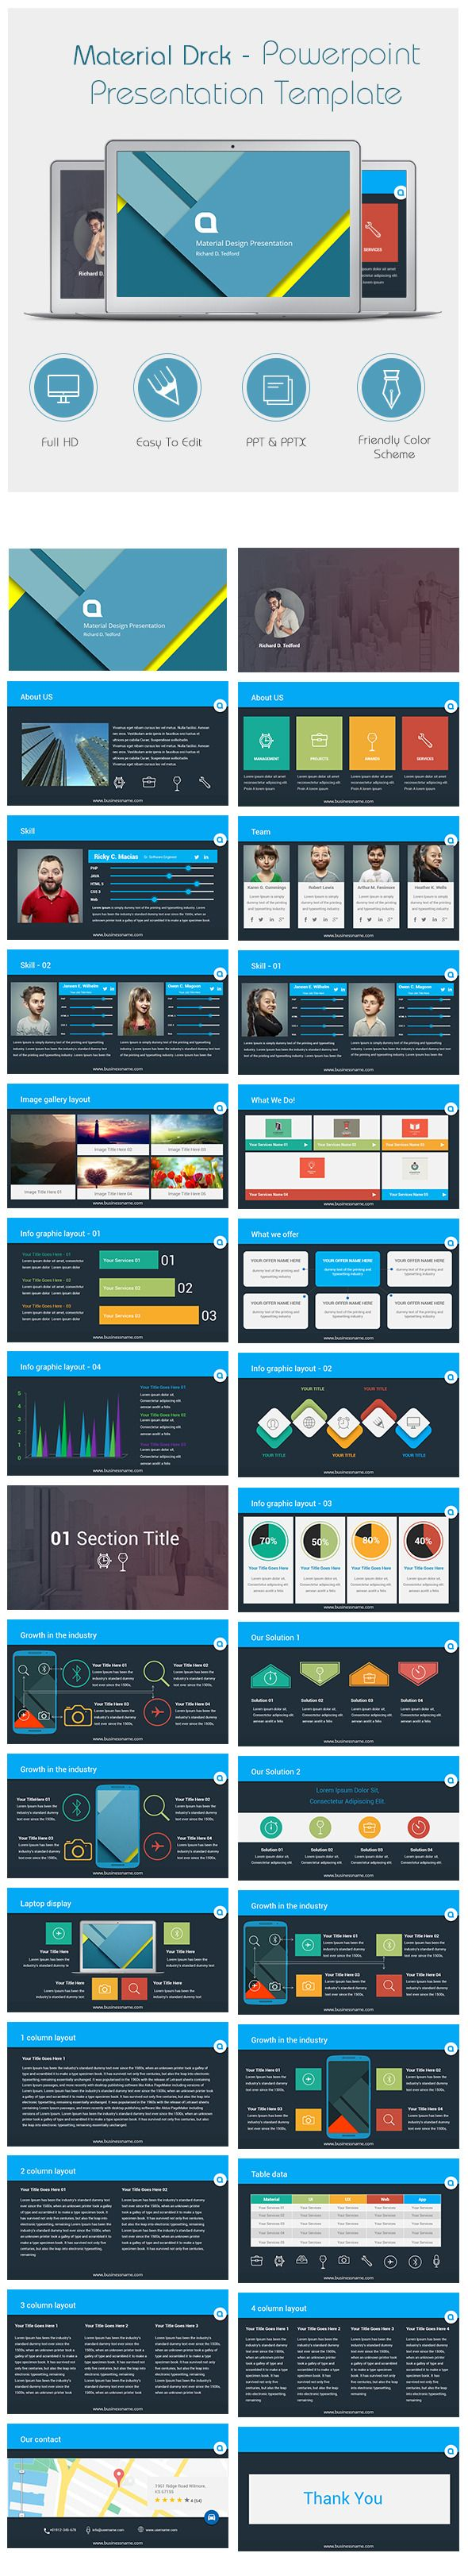 Material Drck Powerpoint Presentation Templates #design Download: http://graphicriver.net/item/material-drck-powerpoint-presentation-templates/11409286?ref=ksioks